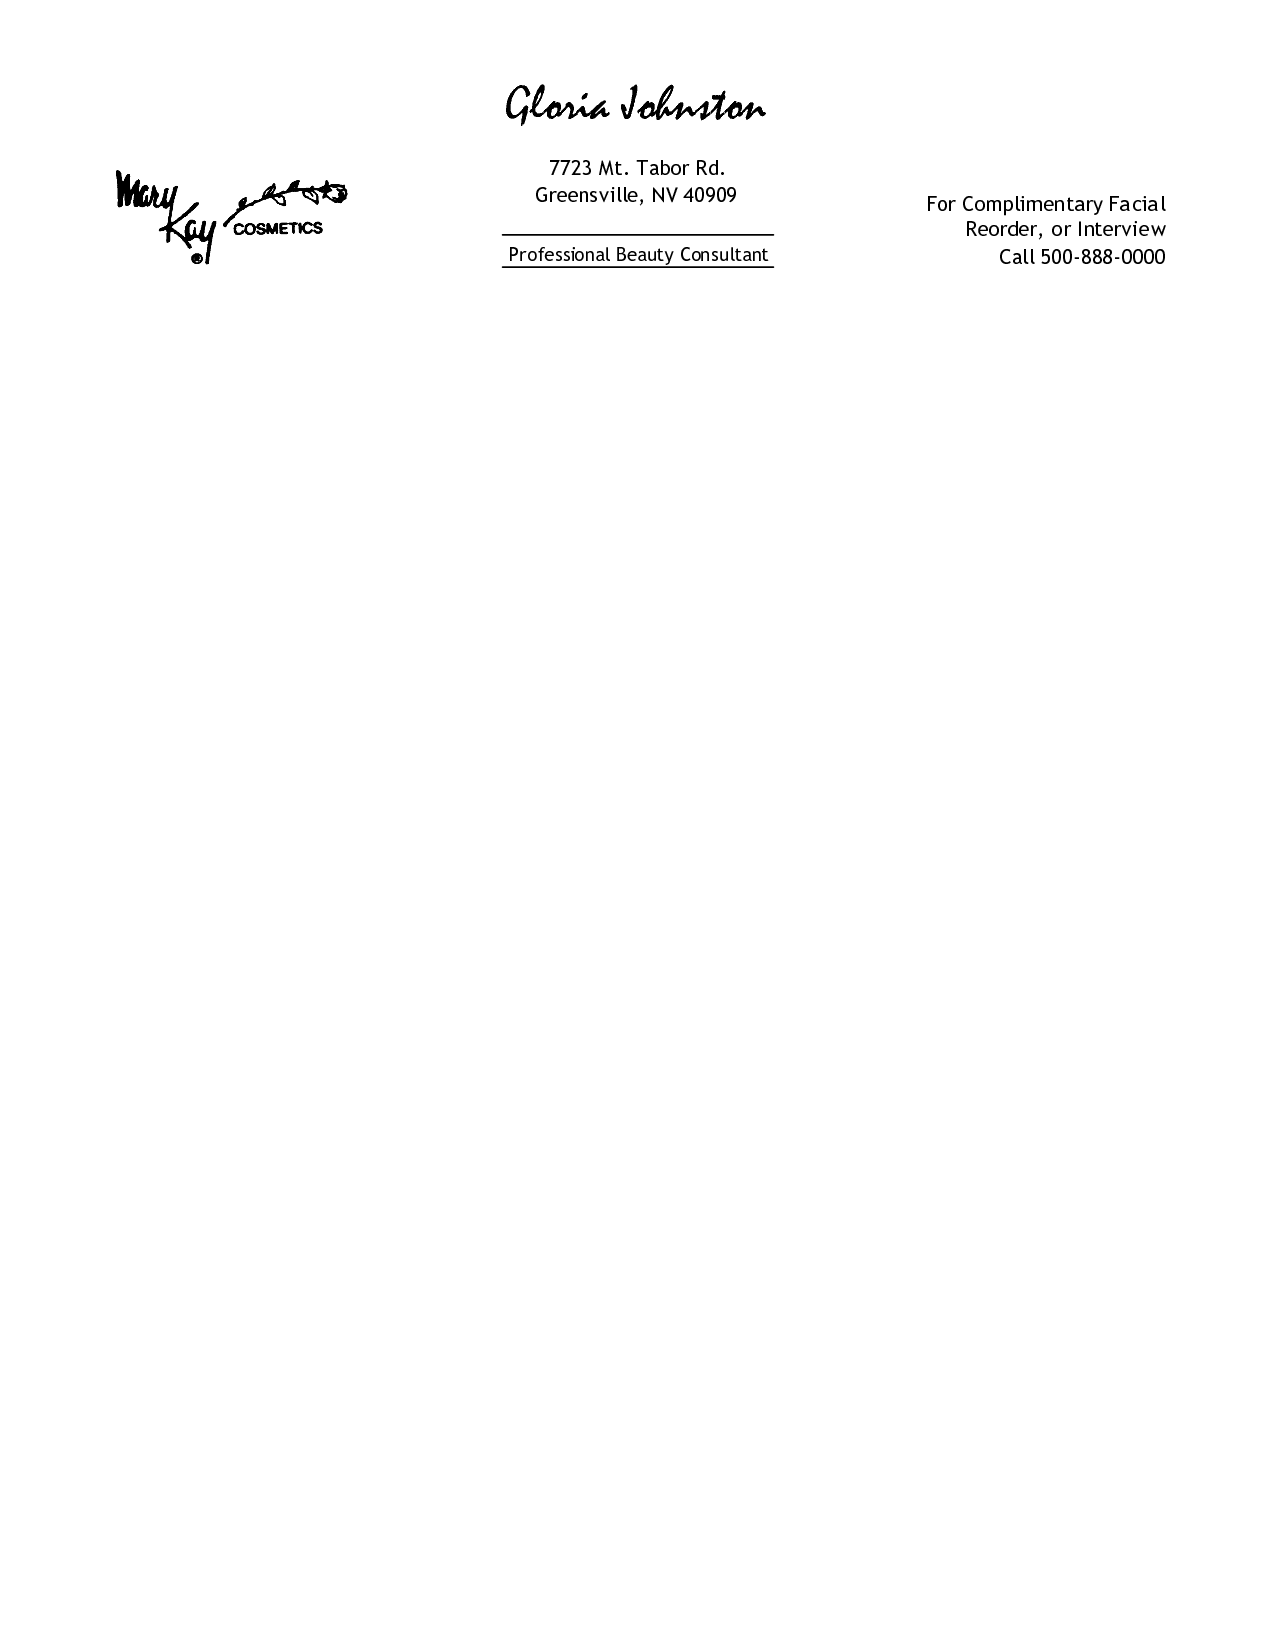 Letterhead Design Personal Letterhead Templates Free Download